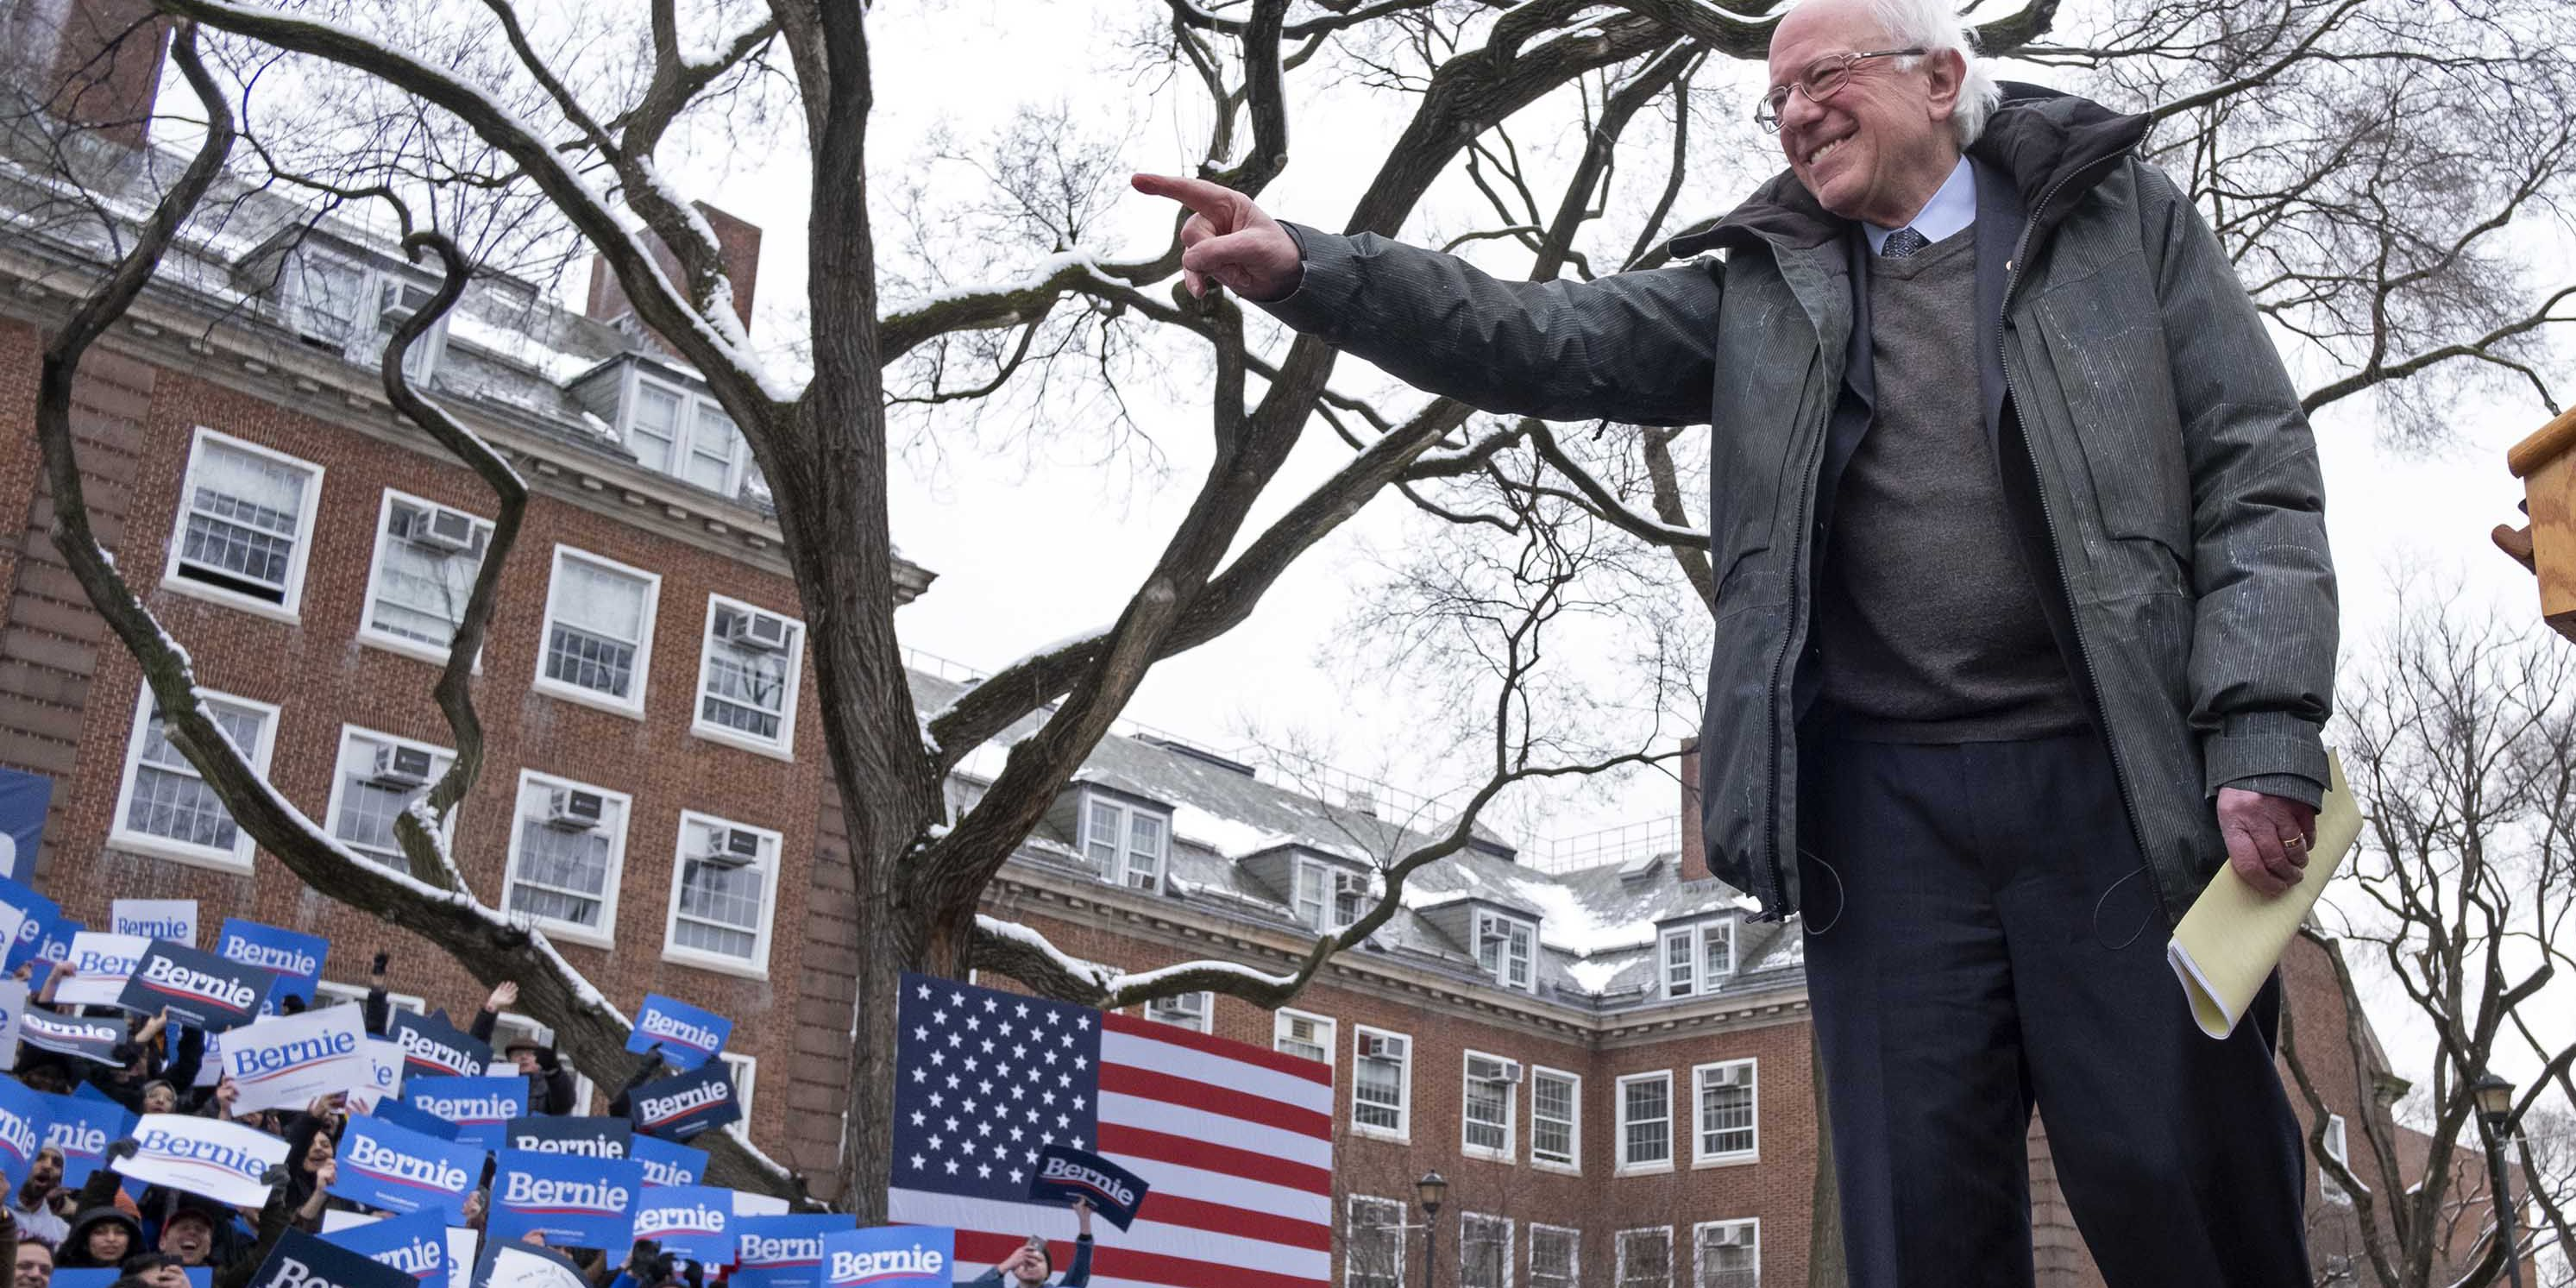 Sanders returns to NY roots, says he can defeat Trump